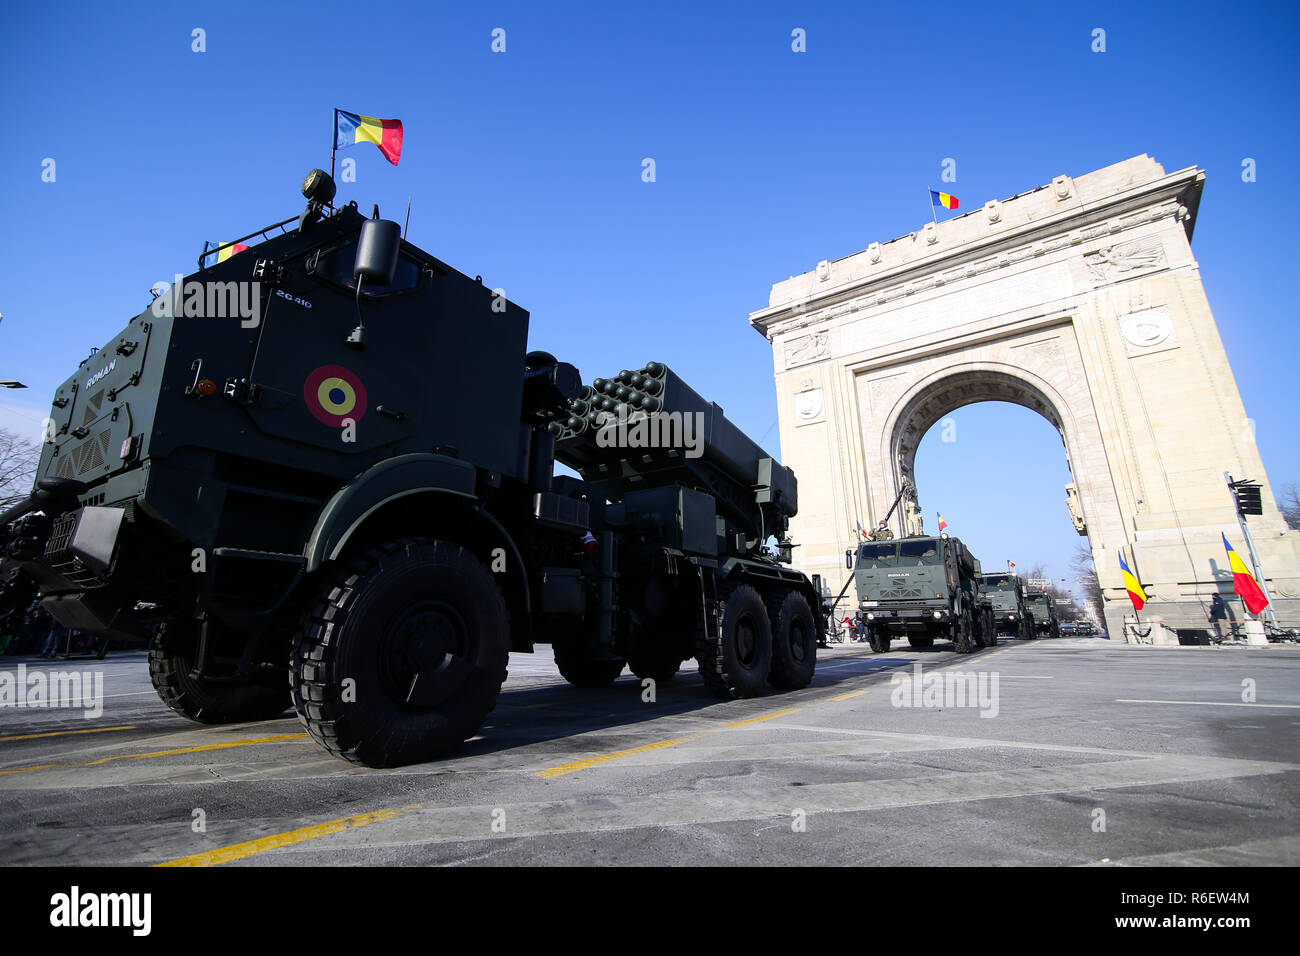 BUCHAREST, ROMANIA - December 1, 2018: The LAROM multiple rocket launcher, in service with the Romanian Land Forces, at Romanian National Day military - Stock Image